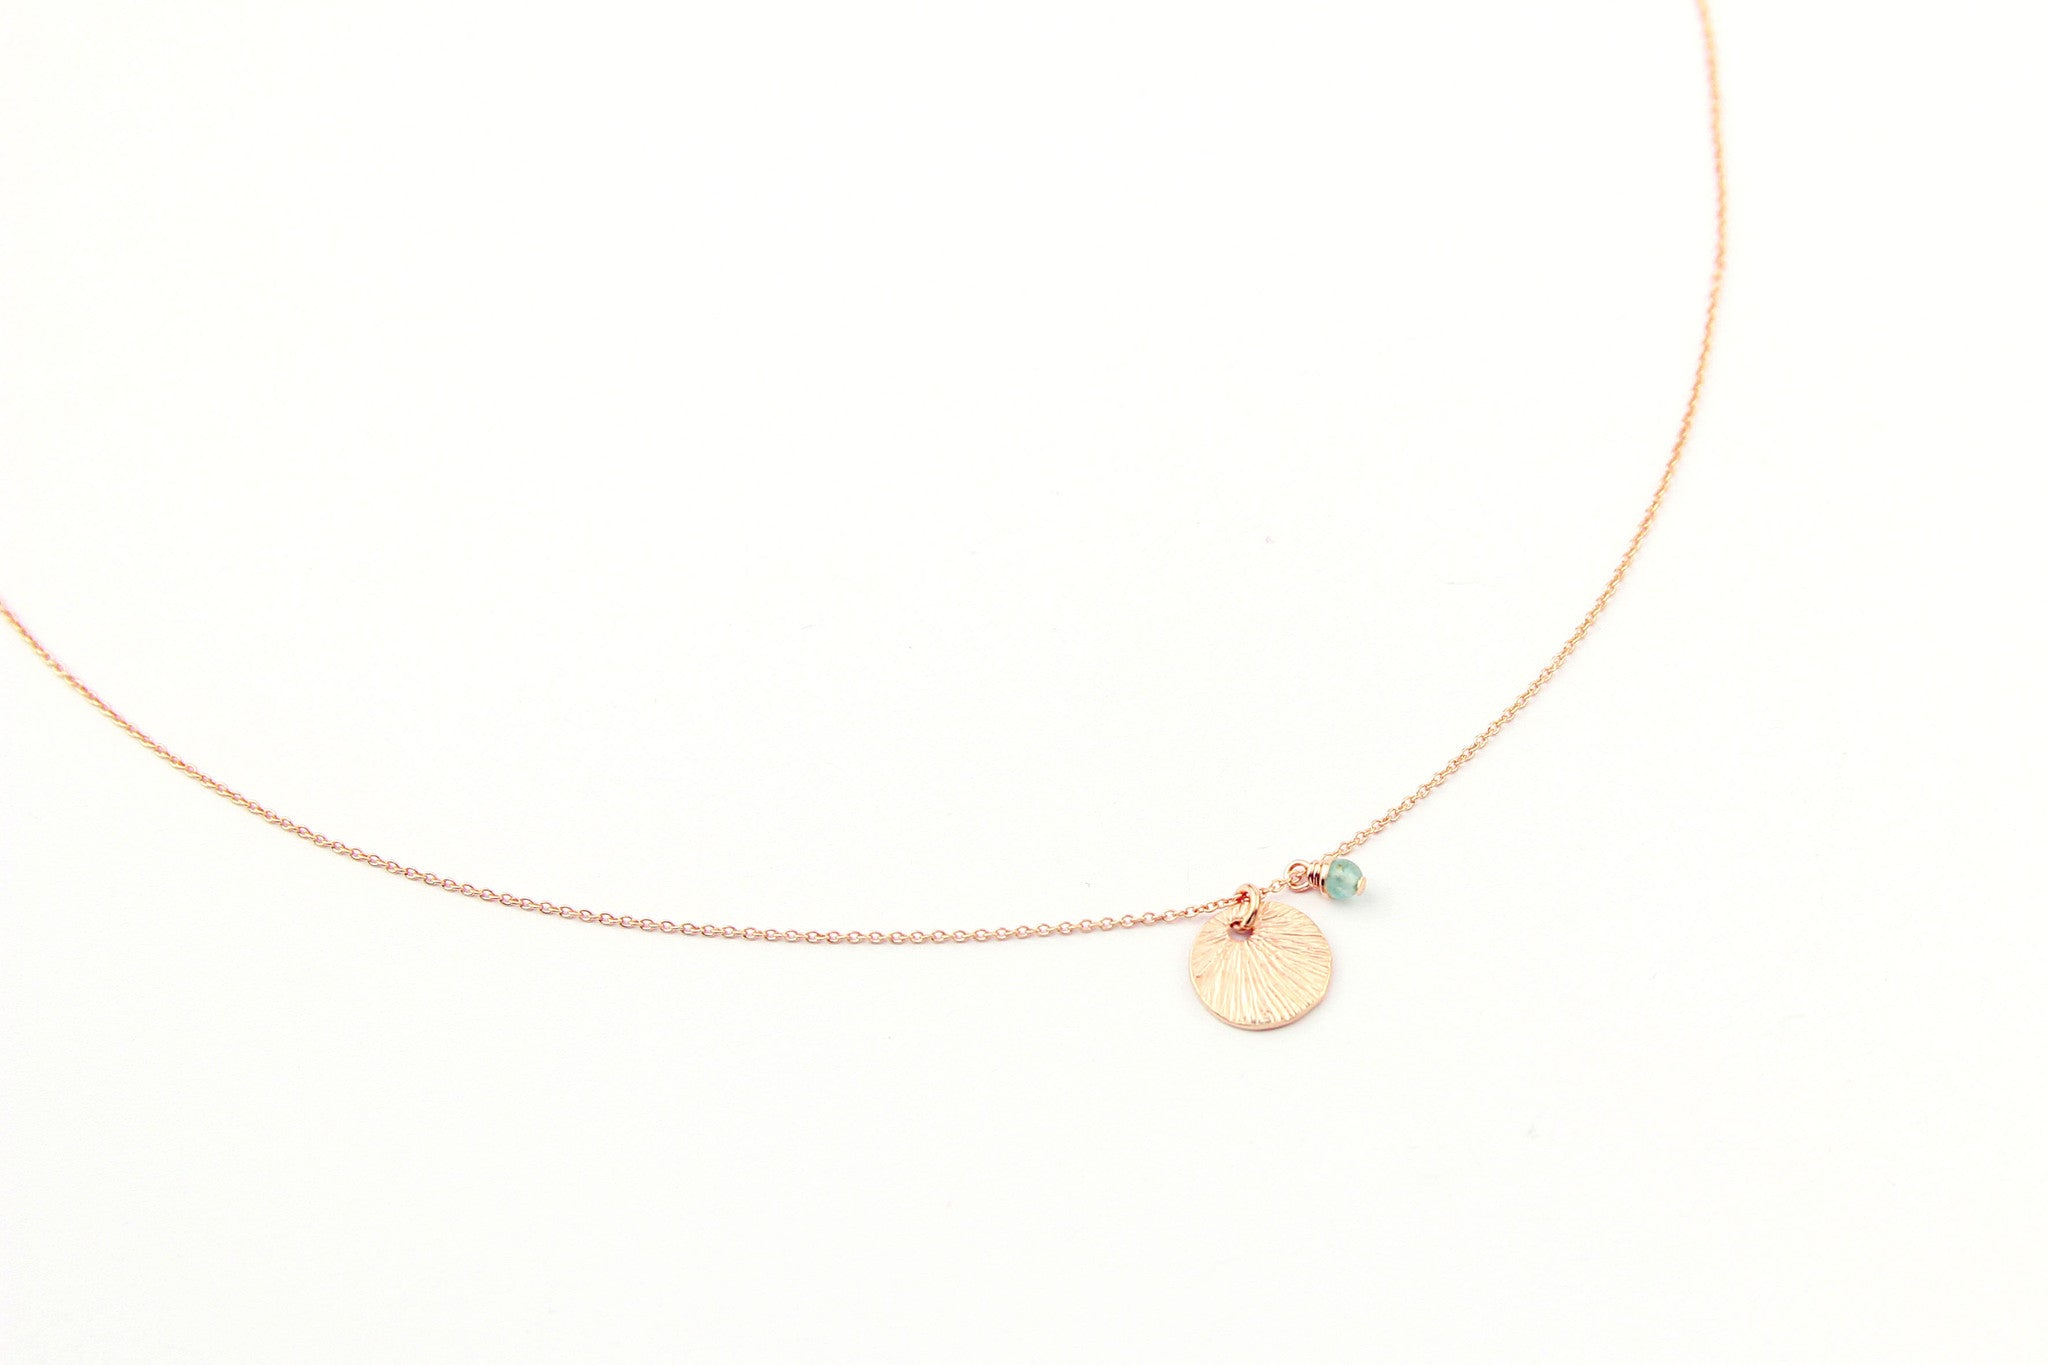 jewelberry necklace kette small shell anchor chain rose gold plated sterling silver fine jewelry handmade with love fairtrade